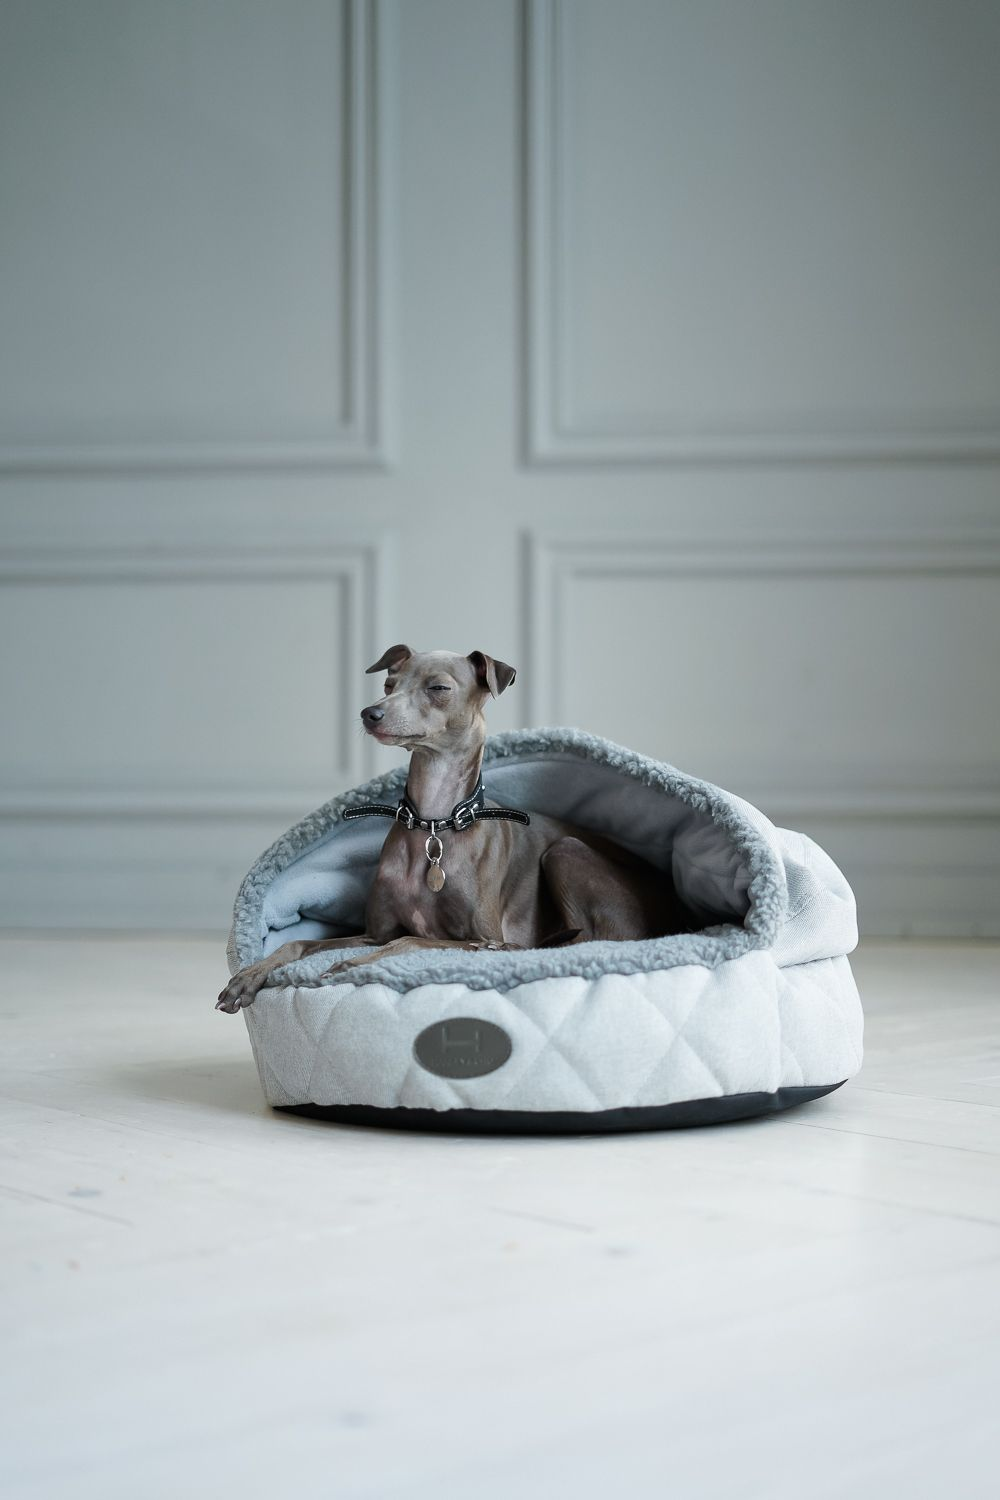 Plush Cave Bed For Dog Bed Cave Snuggly Bedding Italian Greyhound Sleeping Bags Snuggle Bags For Iggy In 2021 Modern Dog Italian Greyhound Pet Safety